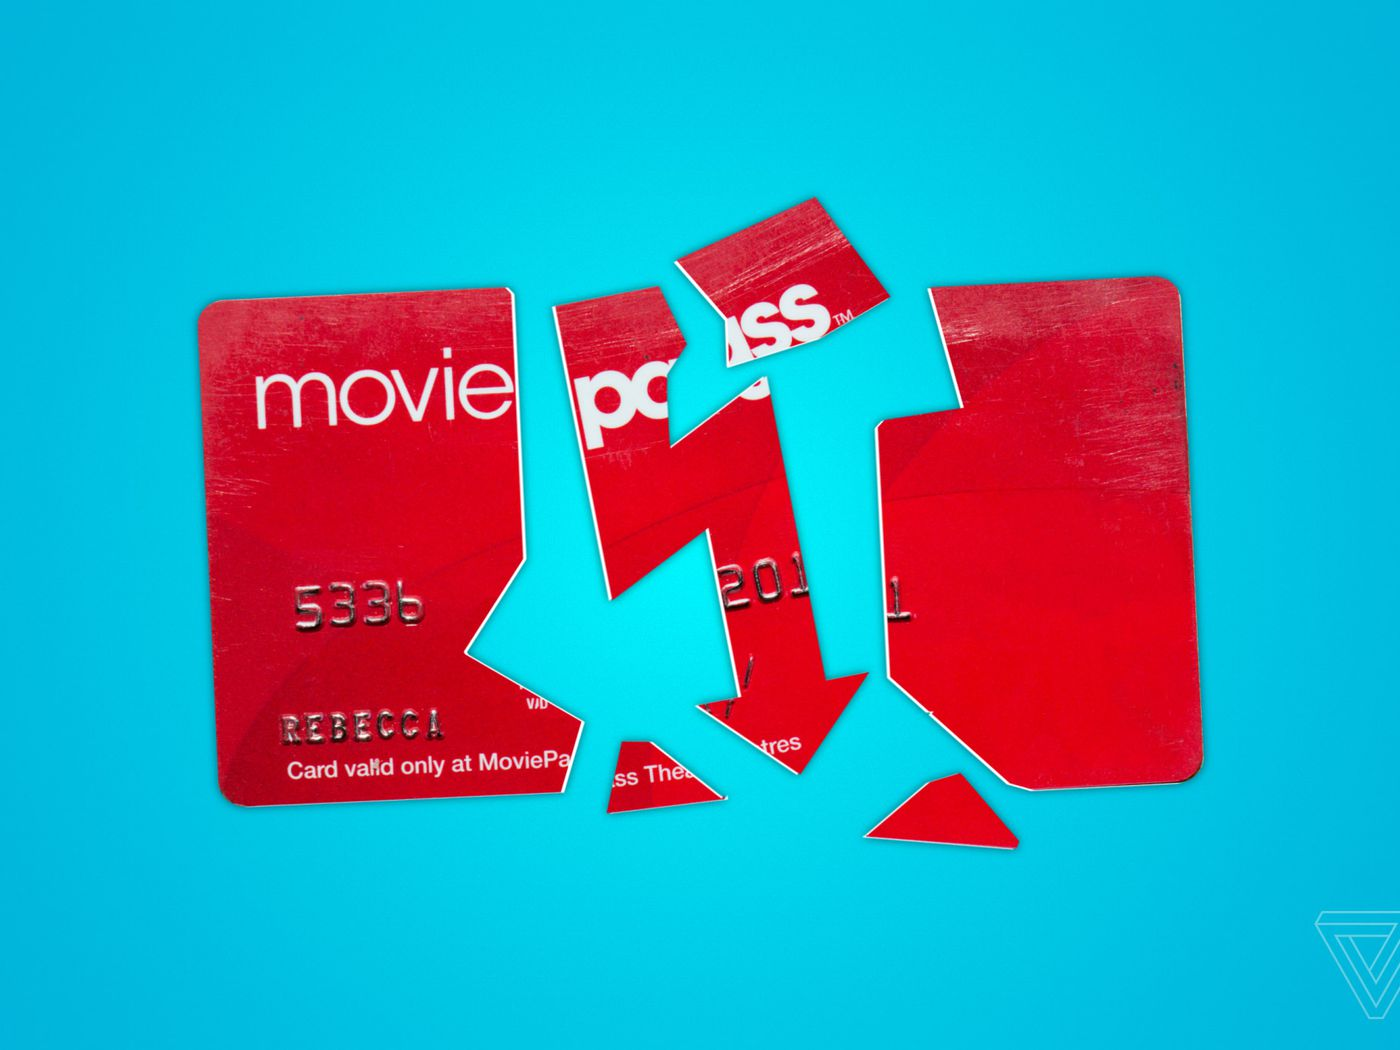 The services we canceled this year, from MoviePass to Netflix - The